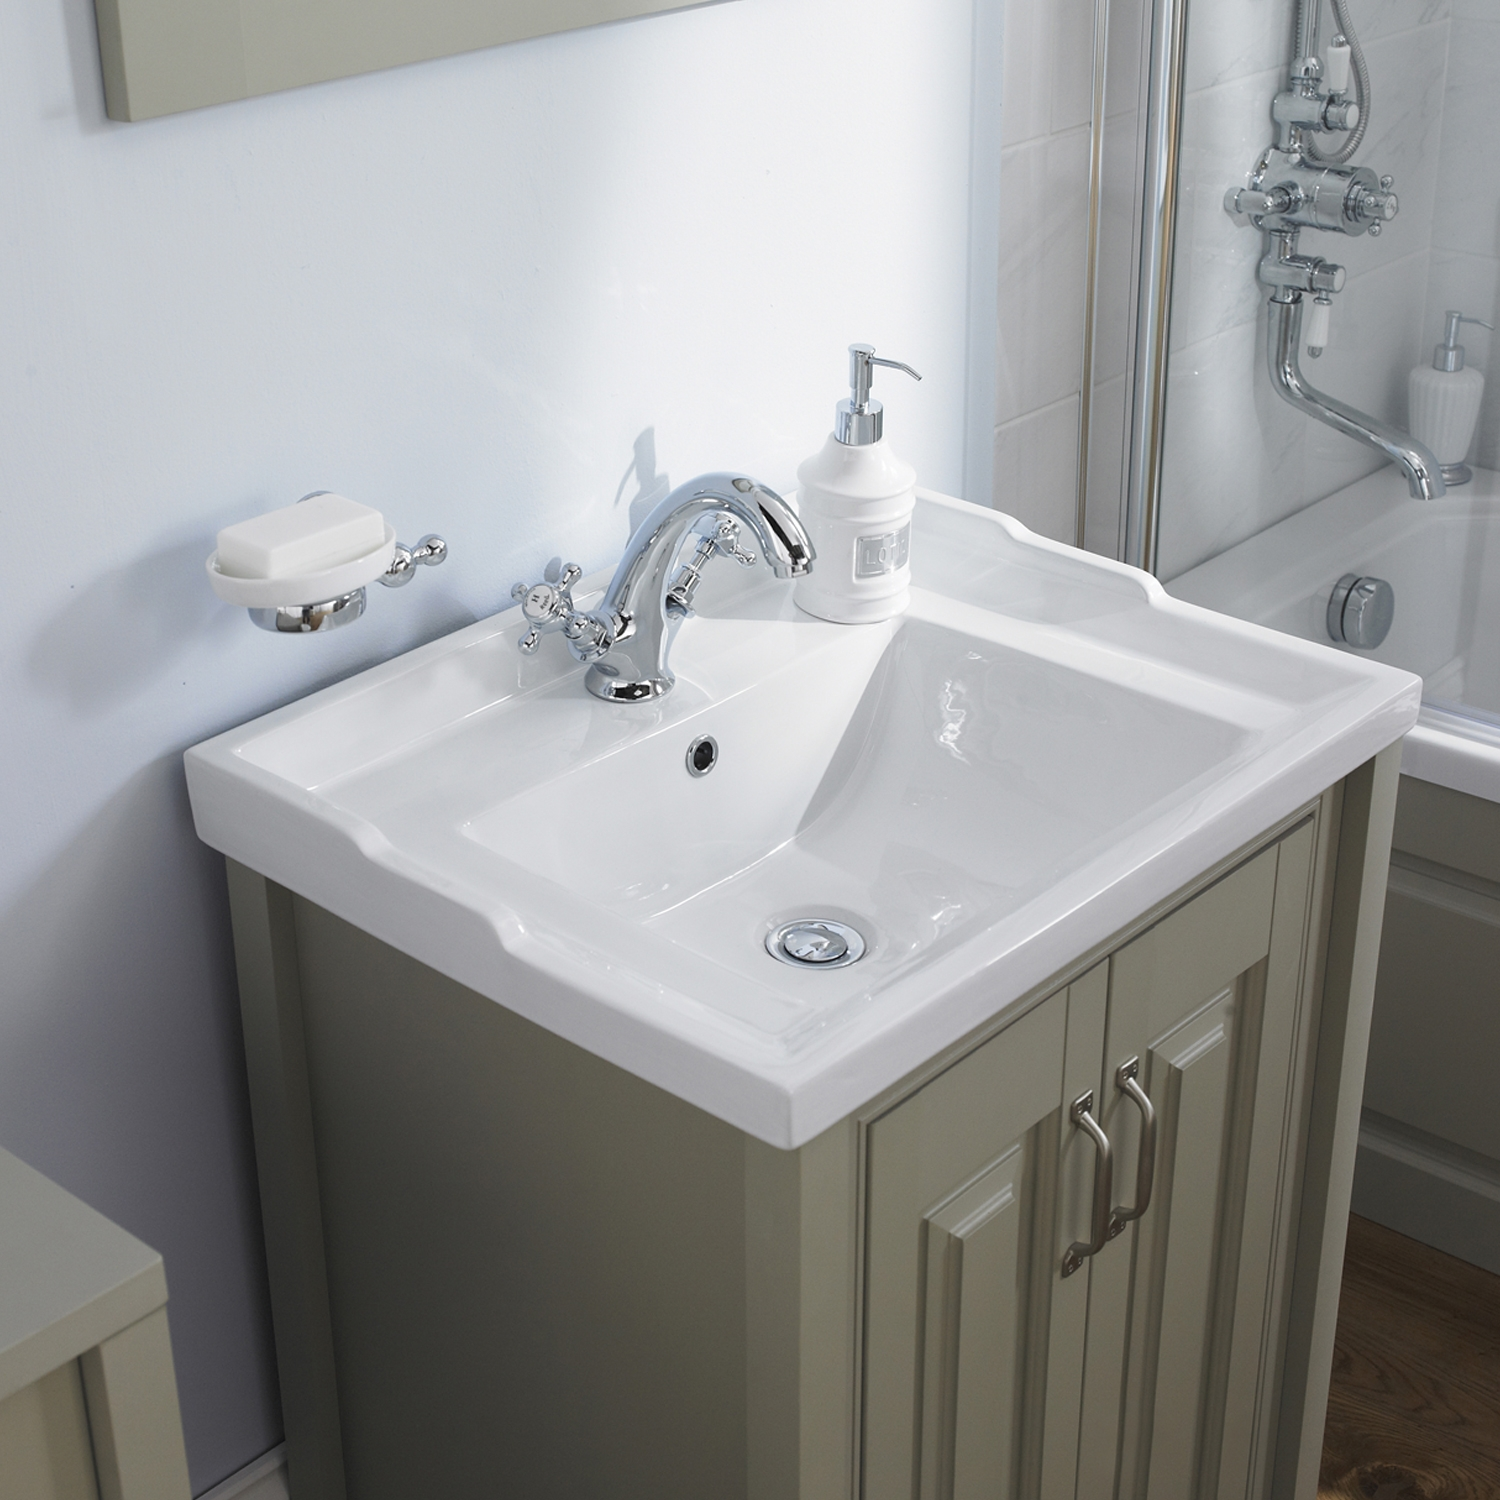 Hudson Reed Stone Grey Bathroom Vanity Unit & Basin 600mm Wide 1 Tap Hole